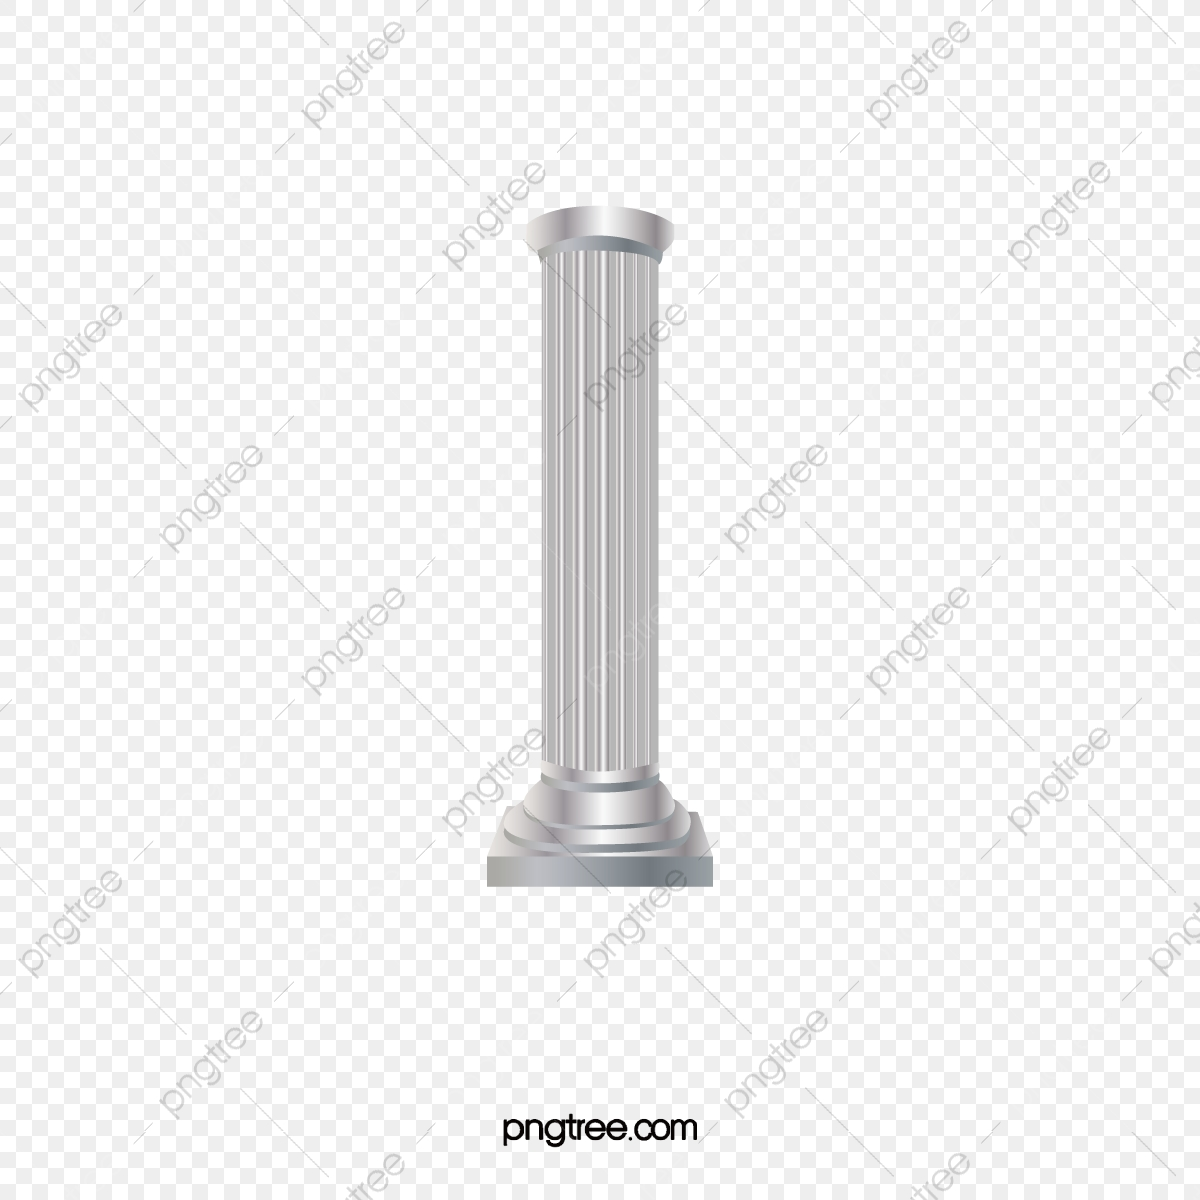 White Pillars, White, Pillar, Decoration PNG Transparent Clipart.